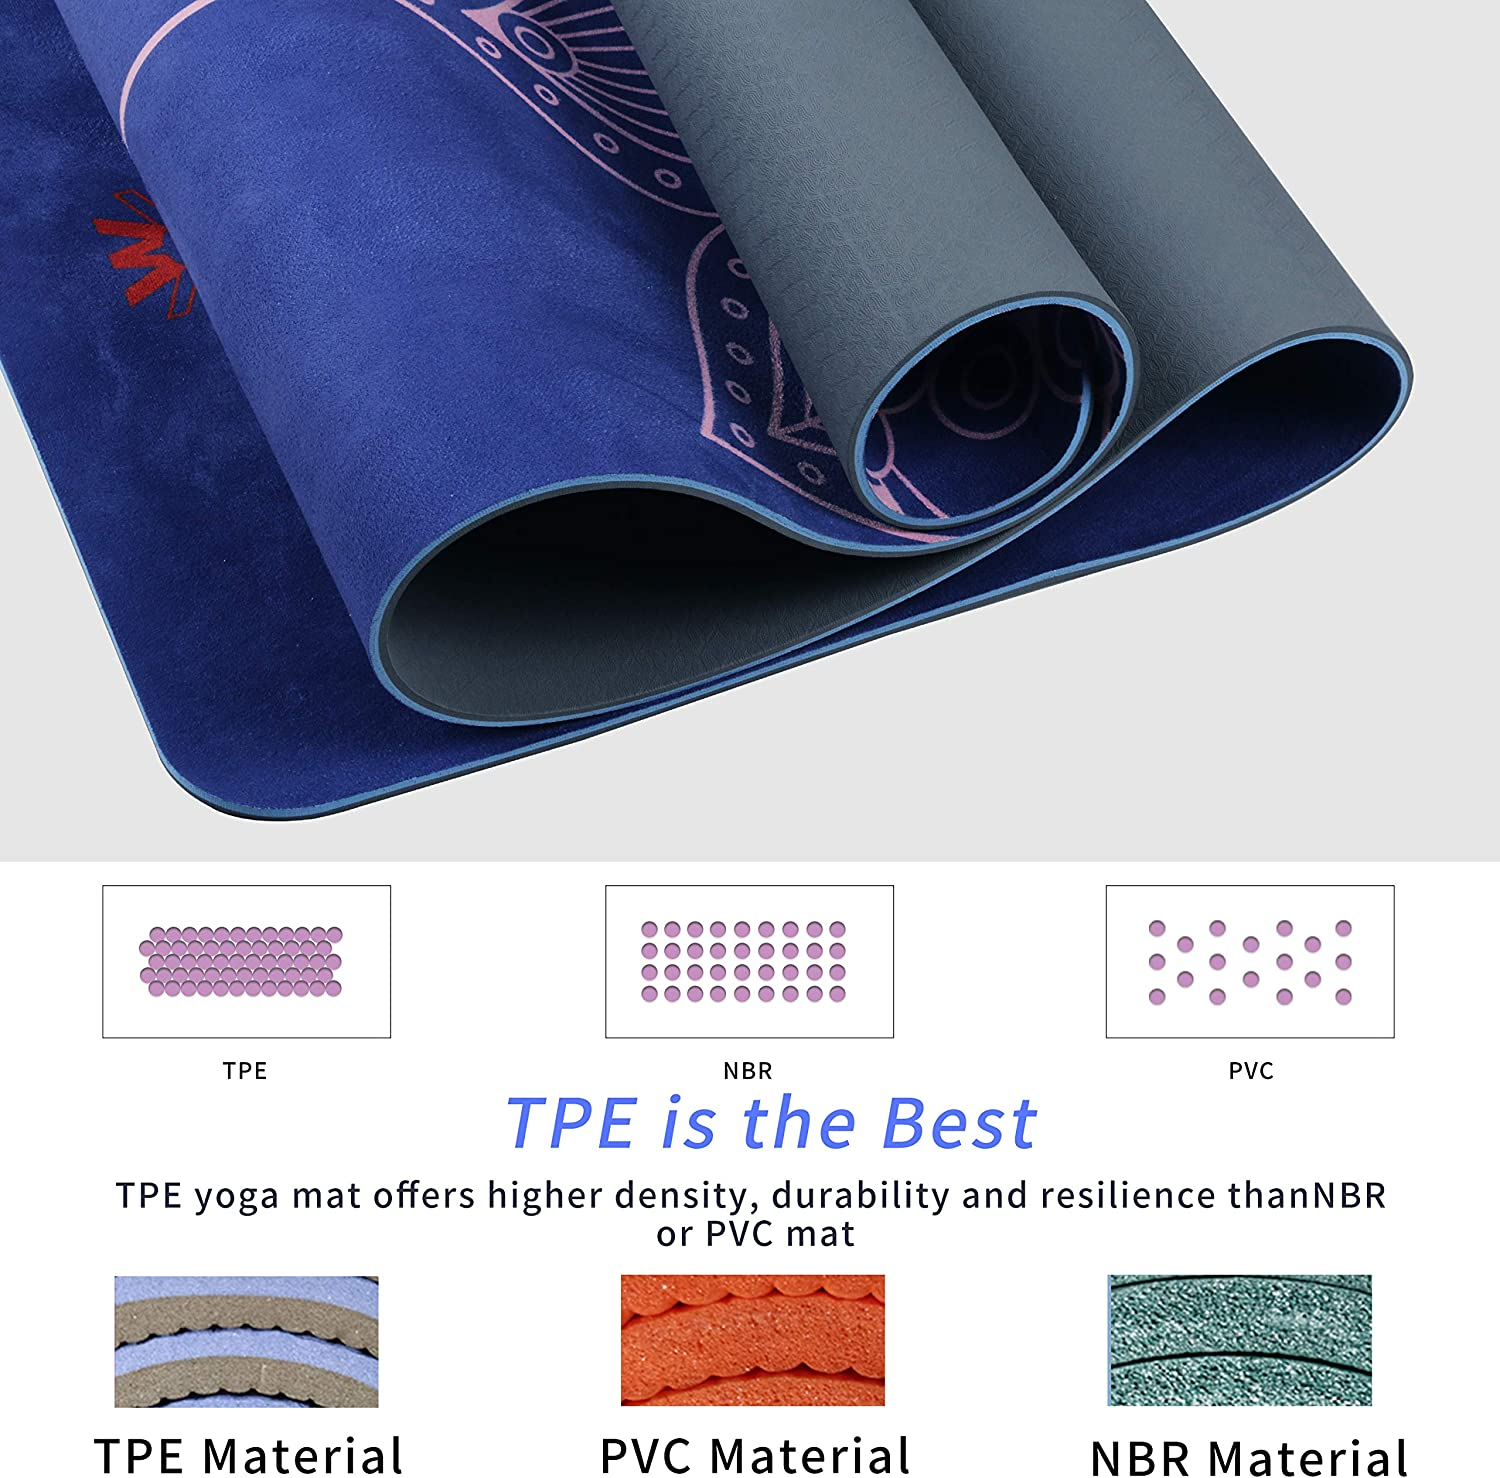 WWWW 4W Suede TPE Yoga Mat Eco Friendly Non Slip Yoga Mats with Carrying Strap and Bag 72x 24 Extra Thick 1//4 Exercise /& Workout Mat for Yoga Pilates Home Fitness